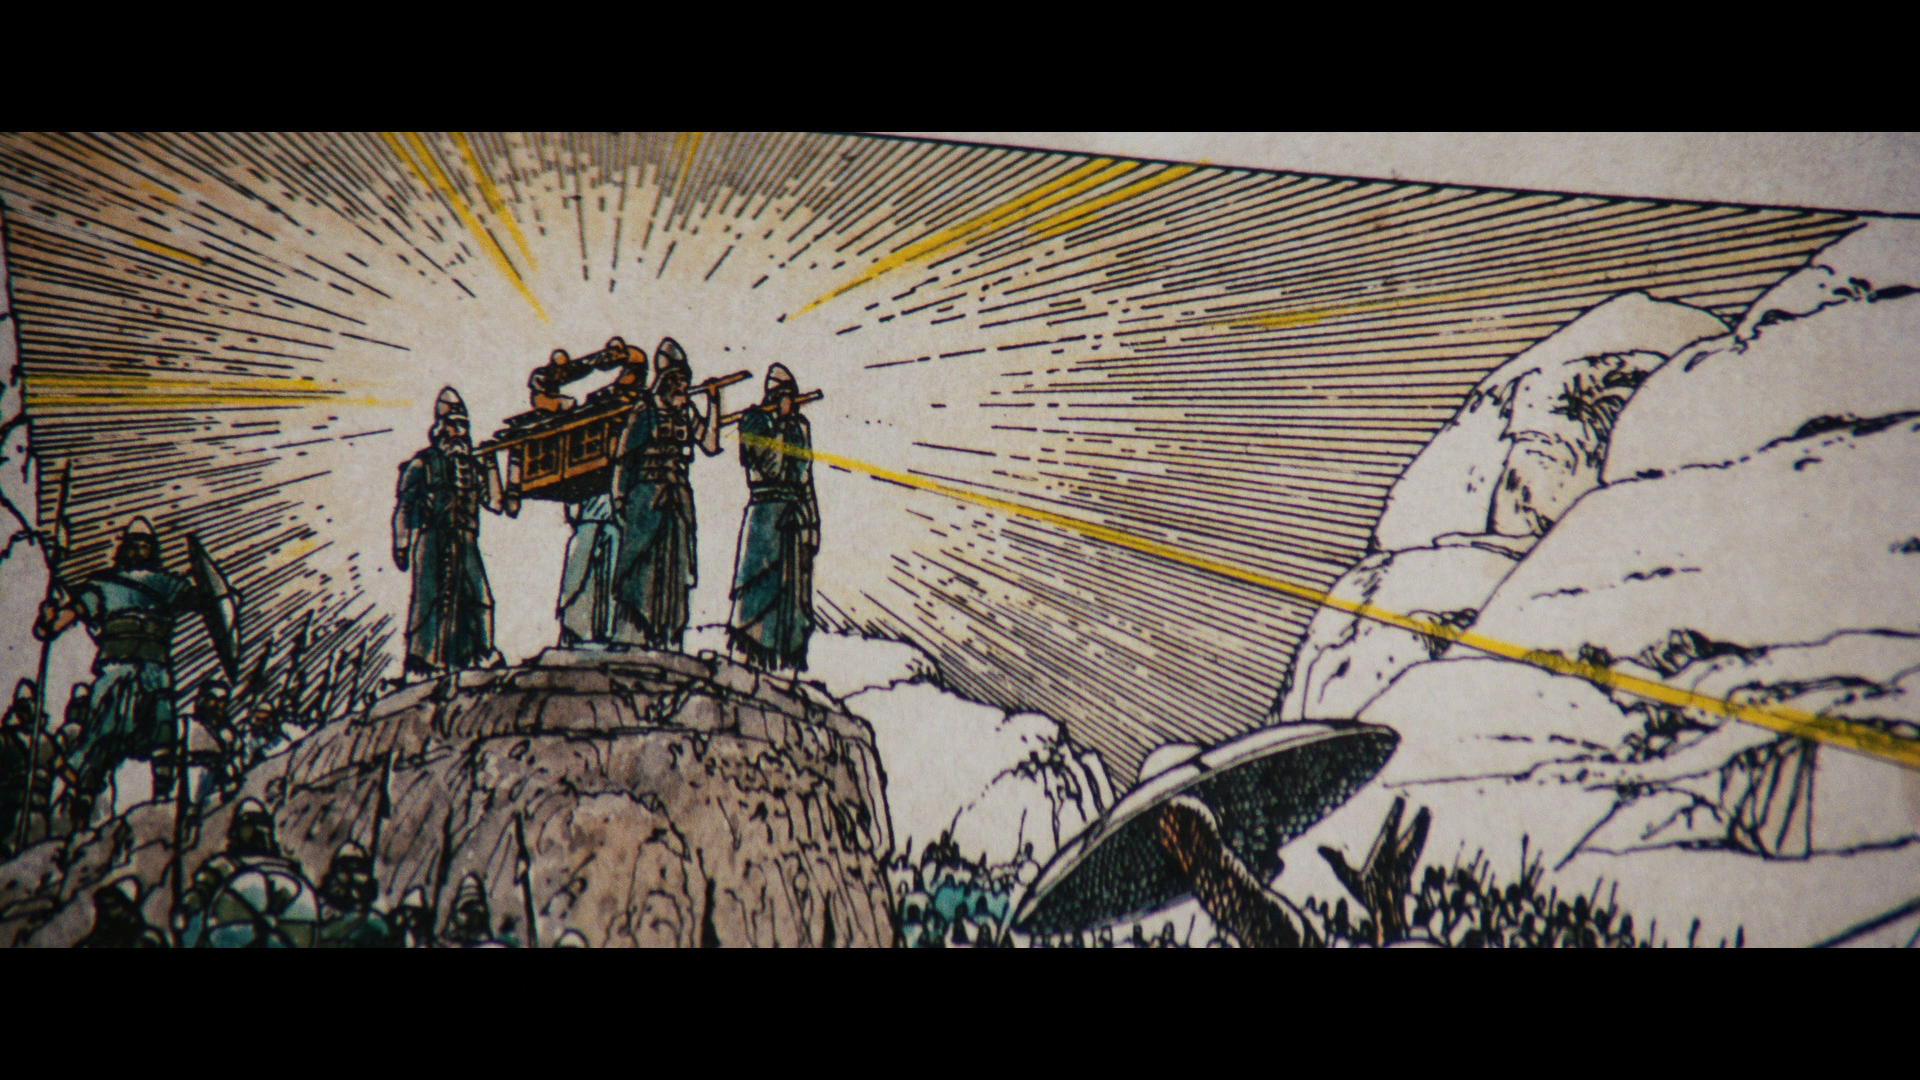 The Ark of the Covenant bible page on screen in Raiders of the Lost Ark.